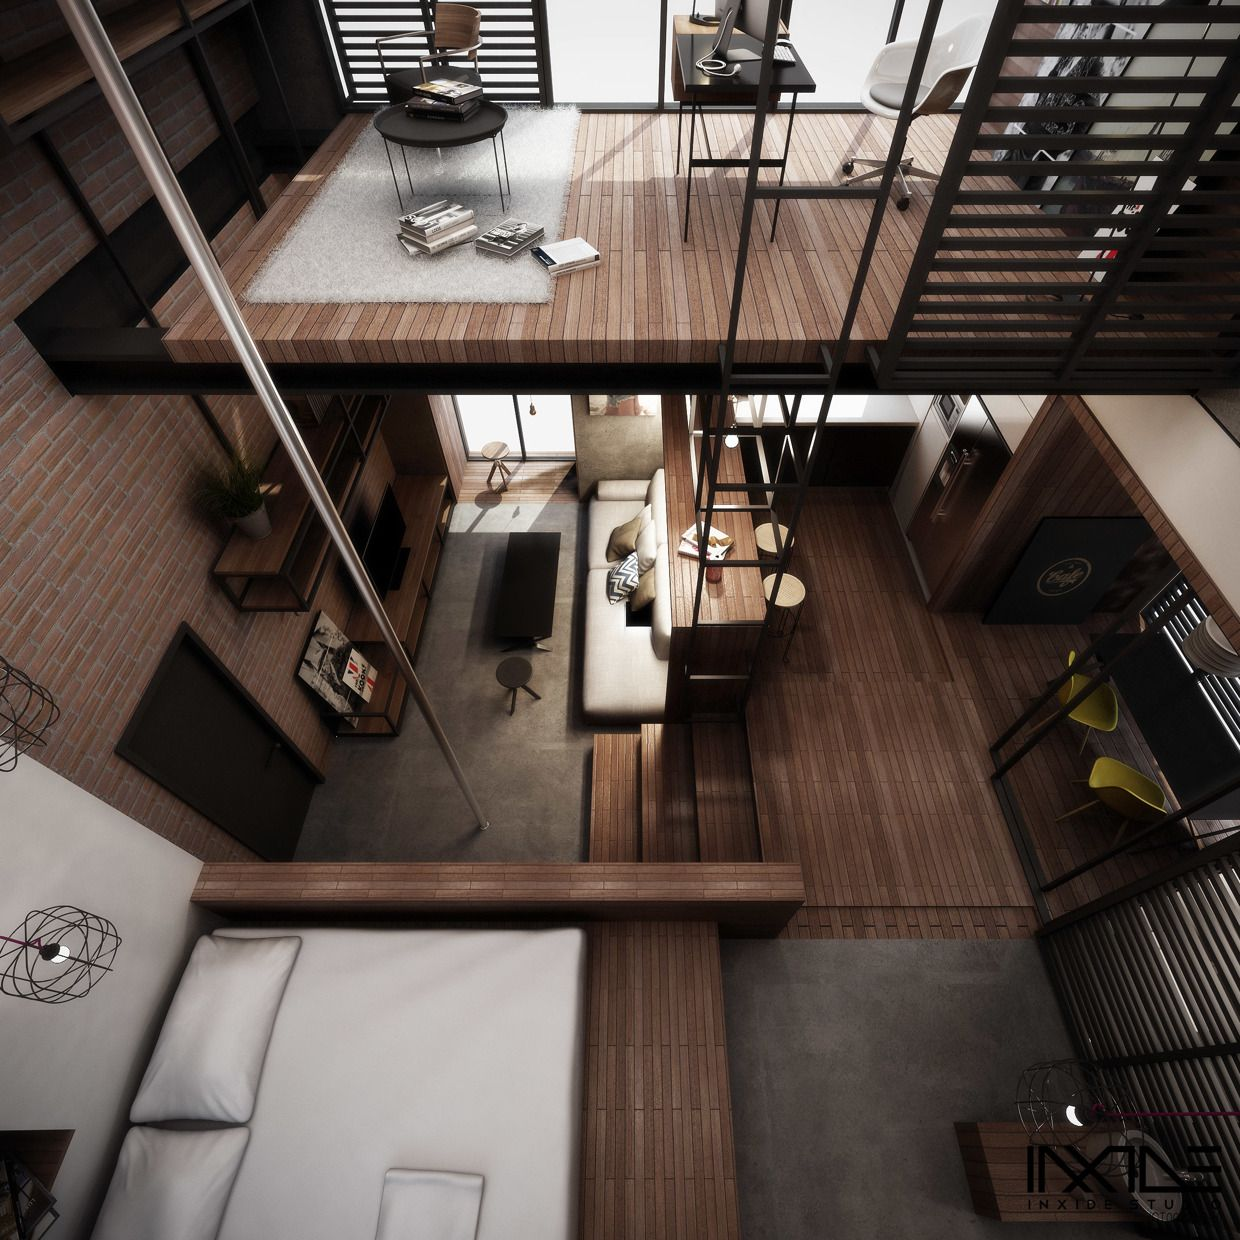 Best Kitchen Gallery: Two Story Home Choices Spaces And Loft House of Efficient Home Loft Design on rachelxblog.com